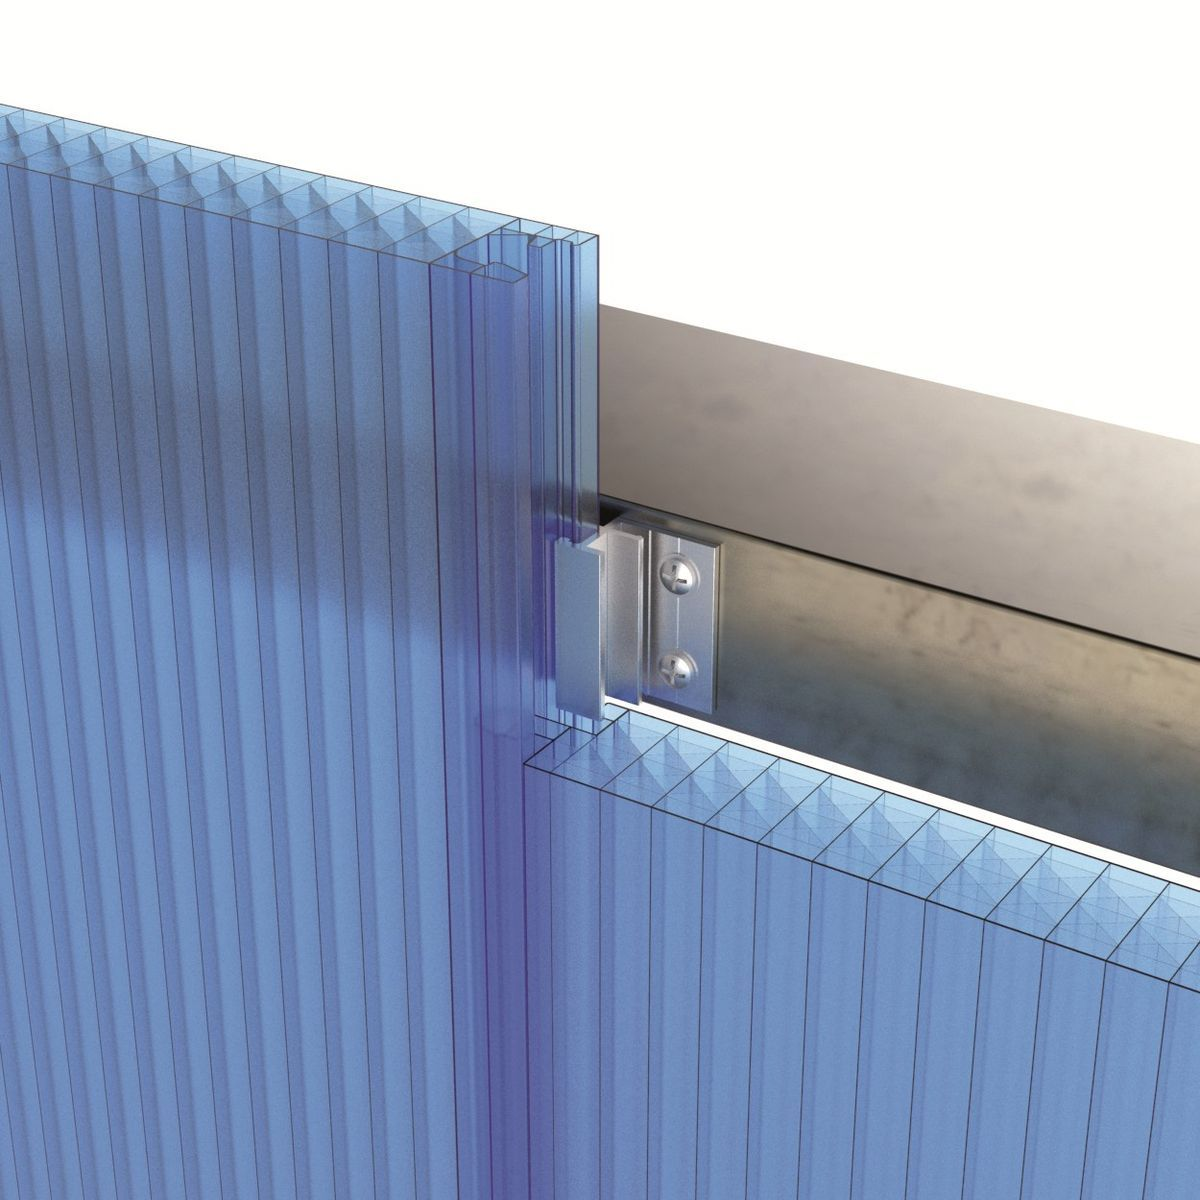 Interlocking Polycarbonate System For Traslucent Facades